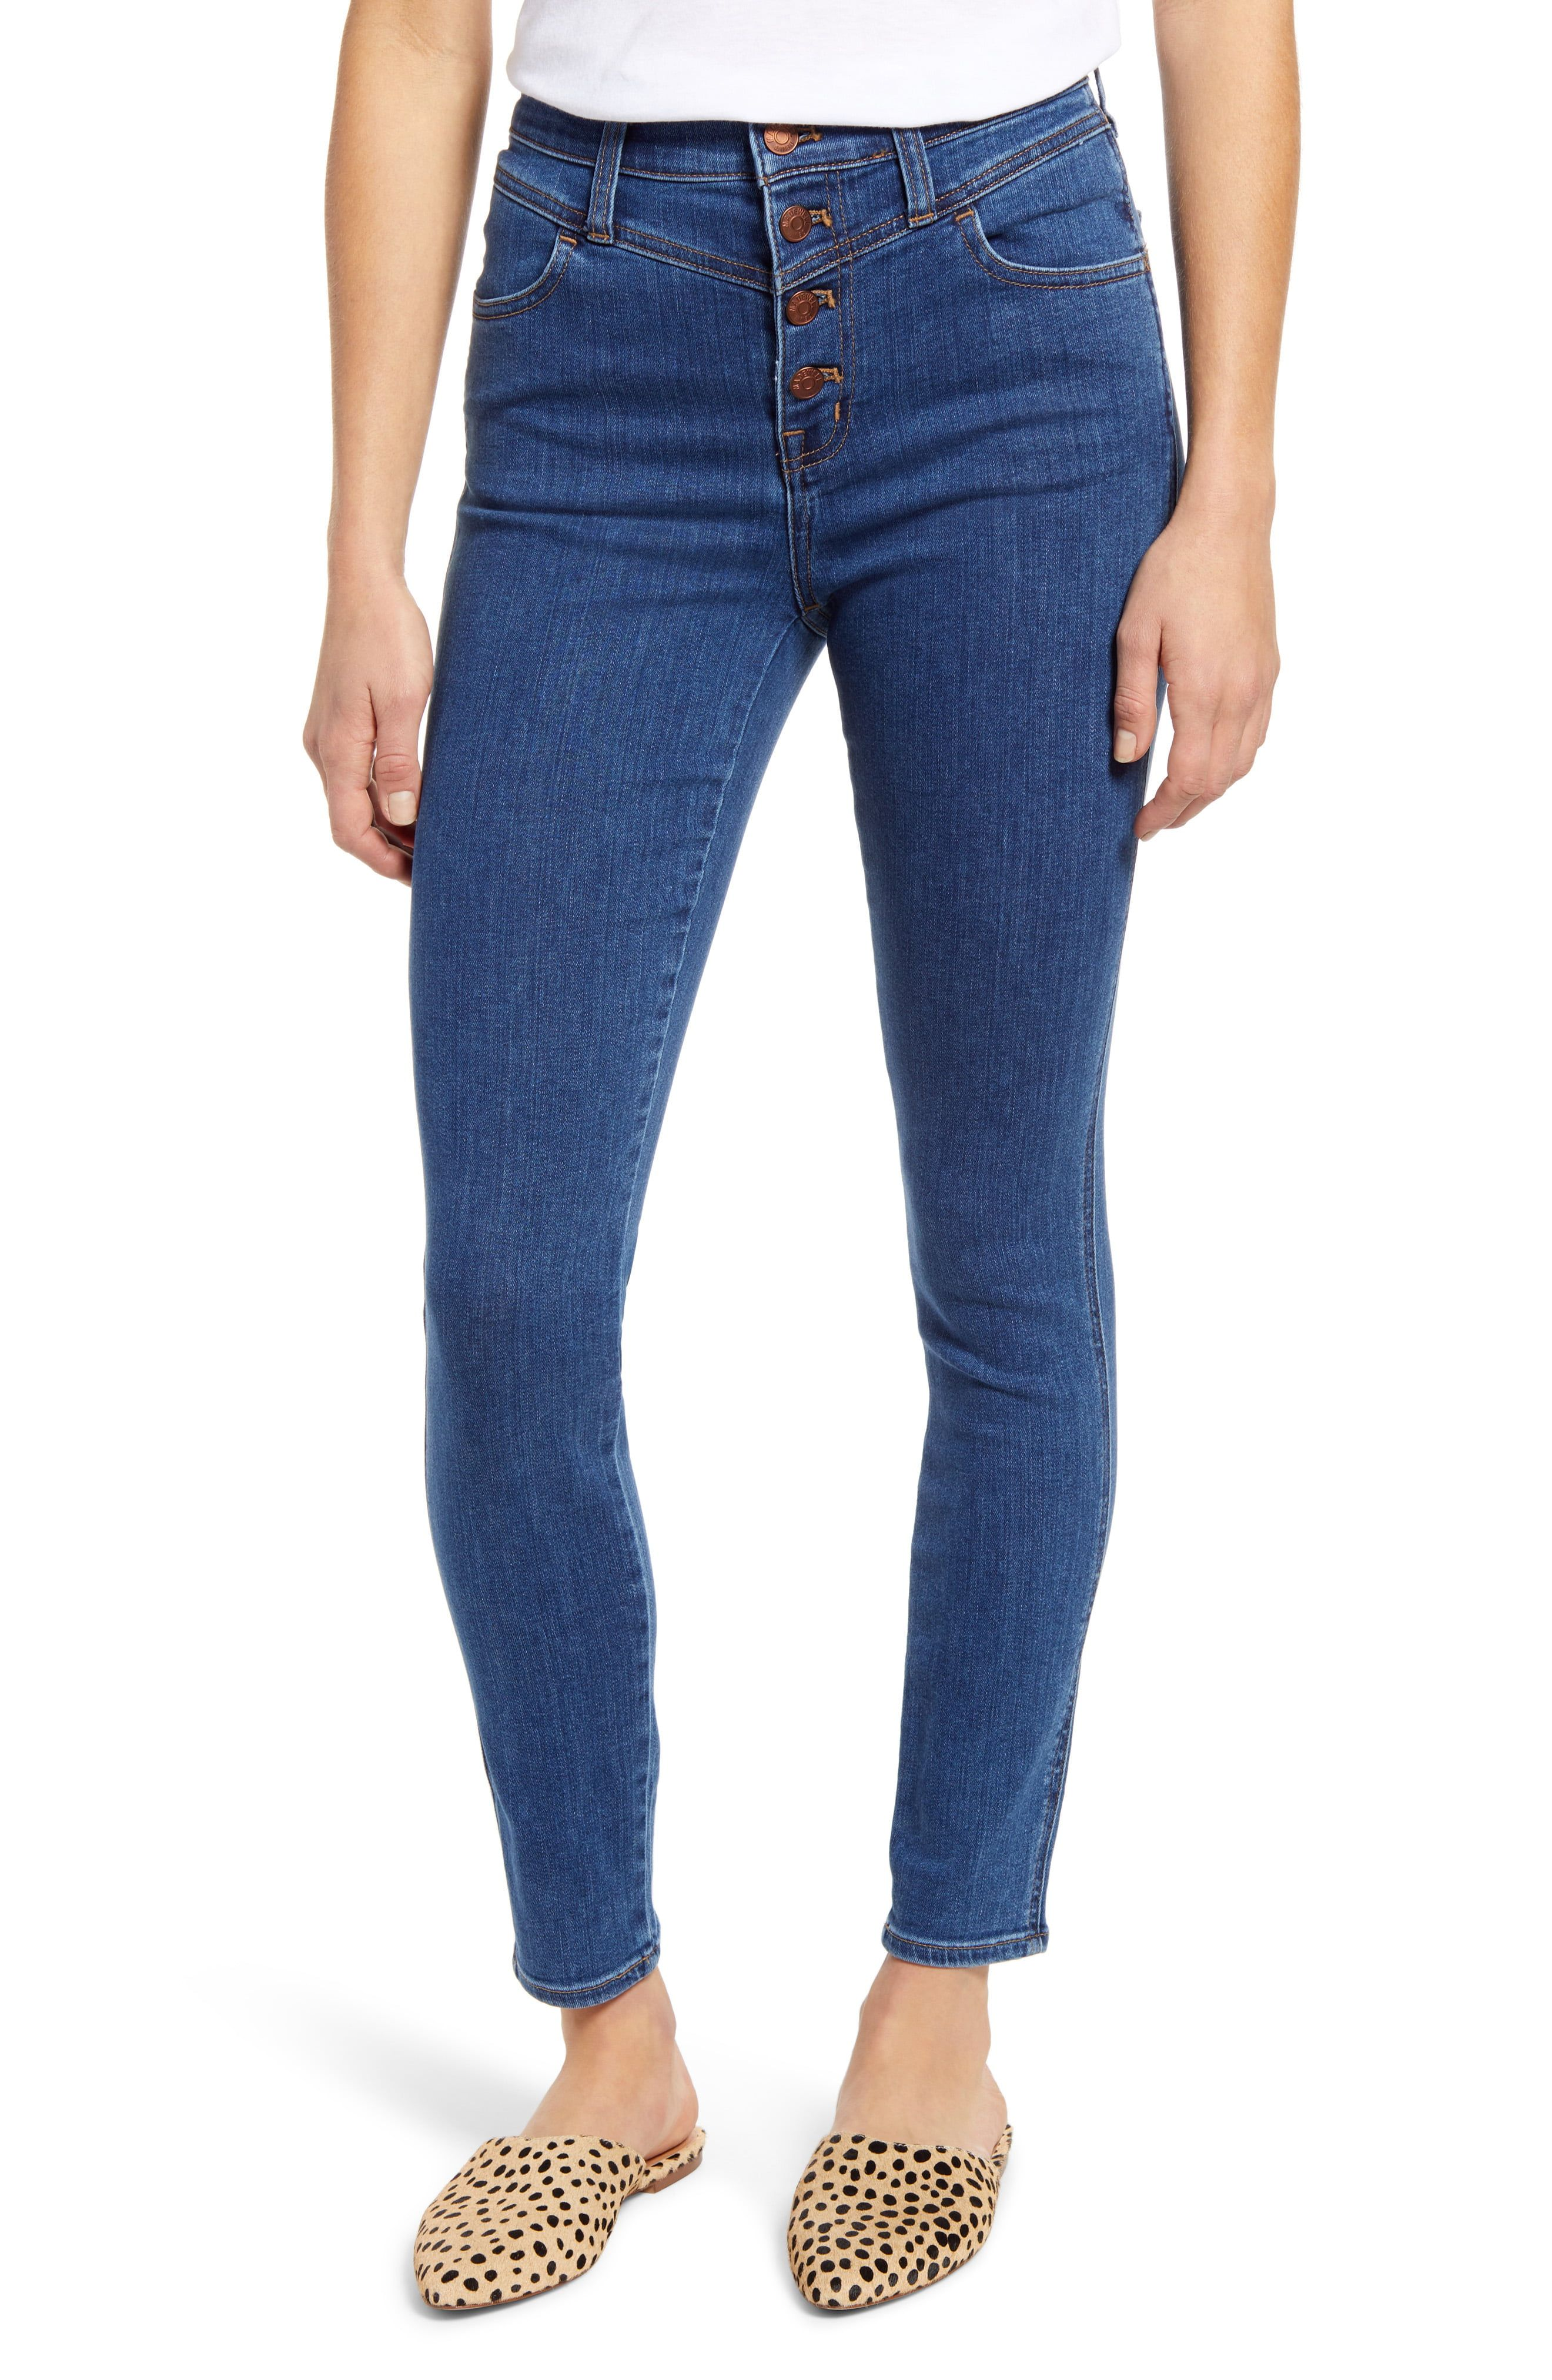 Lightweight and just stretchy enough, these high-rise jeans are crafted from supersoft denim that really lets you breathe. This cool pair is updated with an exposed-button fly and '80s-inspired yoke. Style Name:Madewell 10-Inch High Waist Roadtripper Jeans (Eversall). Style Number: 6130764. Available in stores.